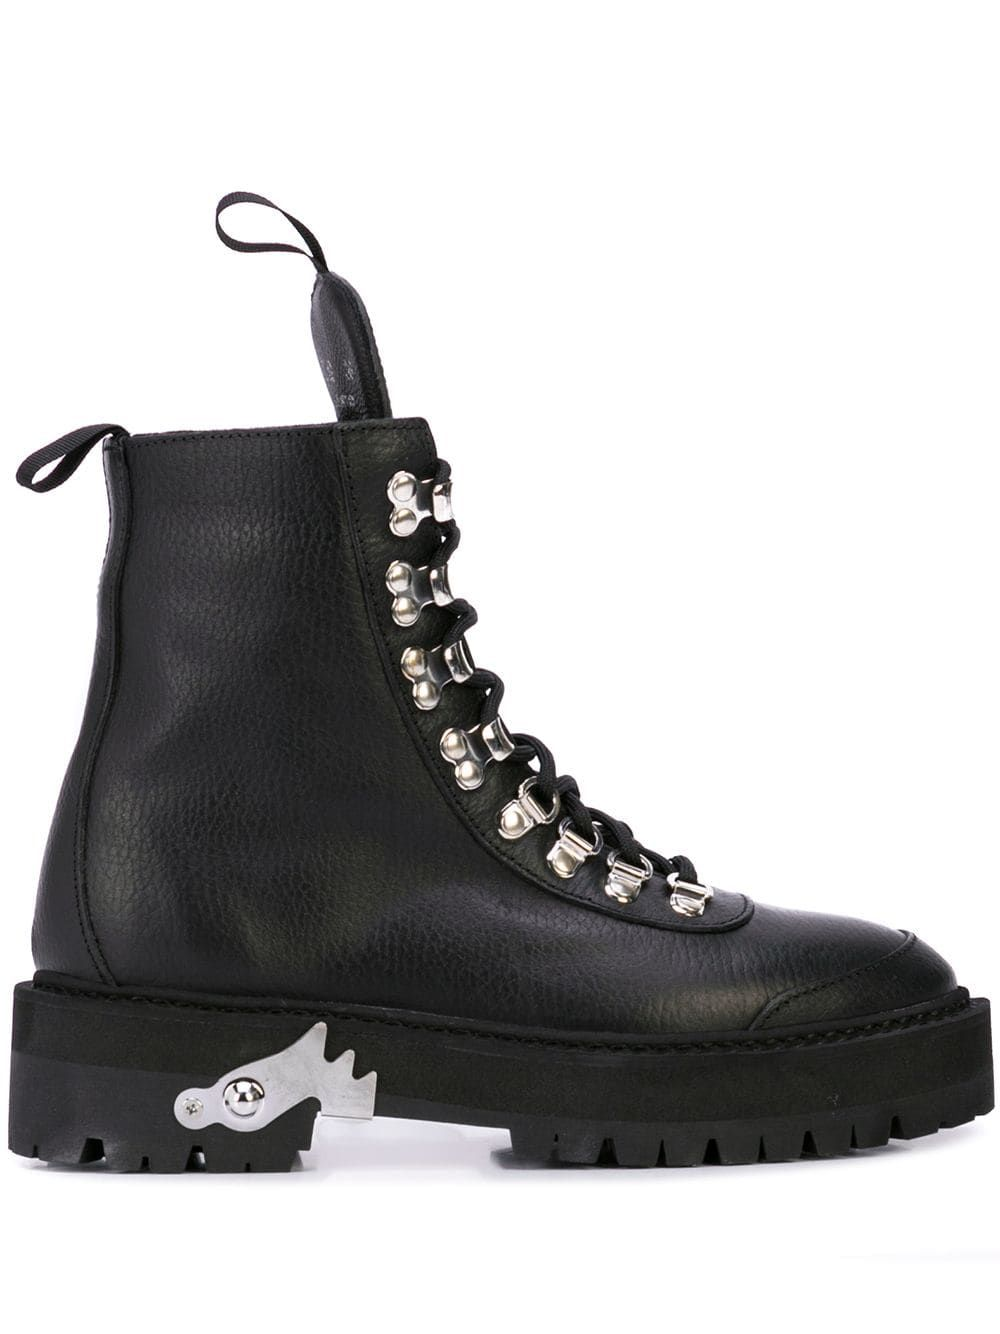 Off-White lace-up Hiking Boots - Farfetch